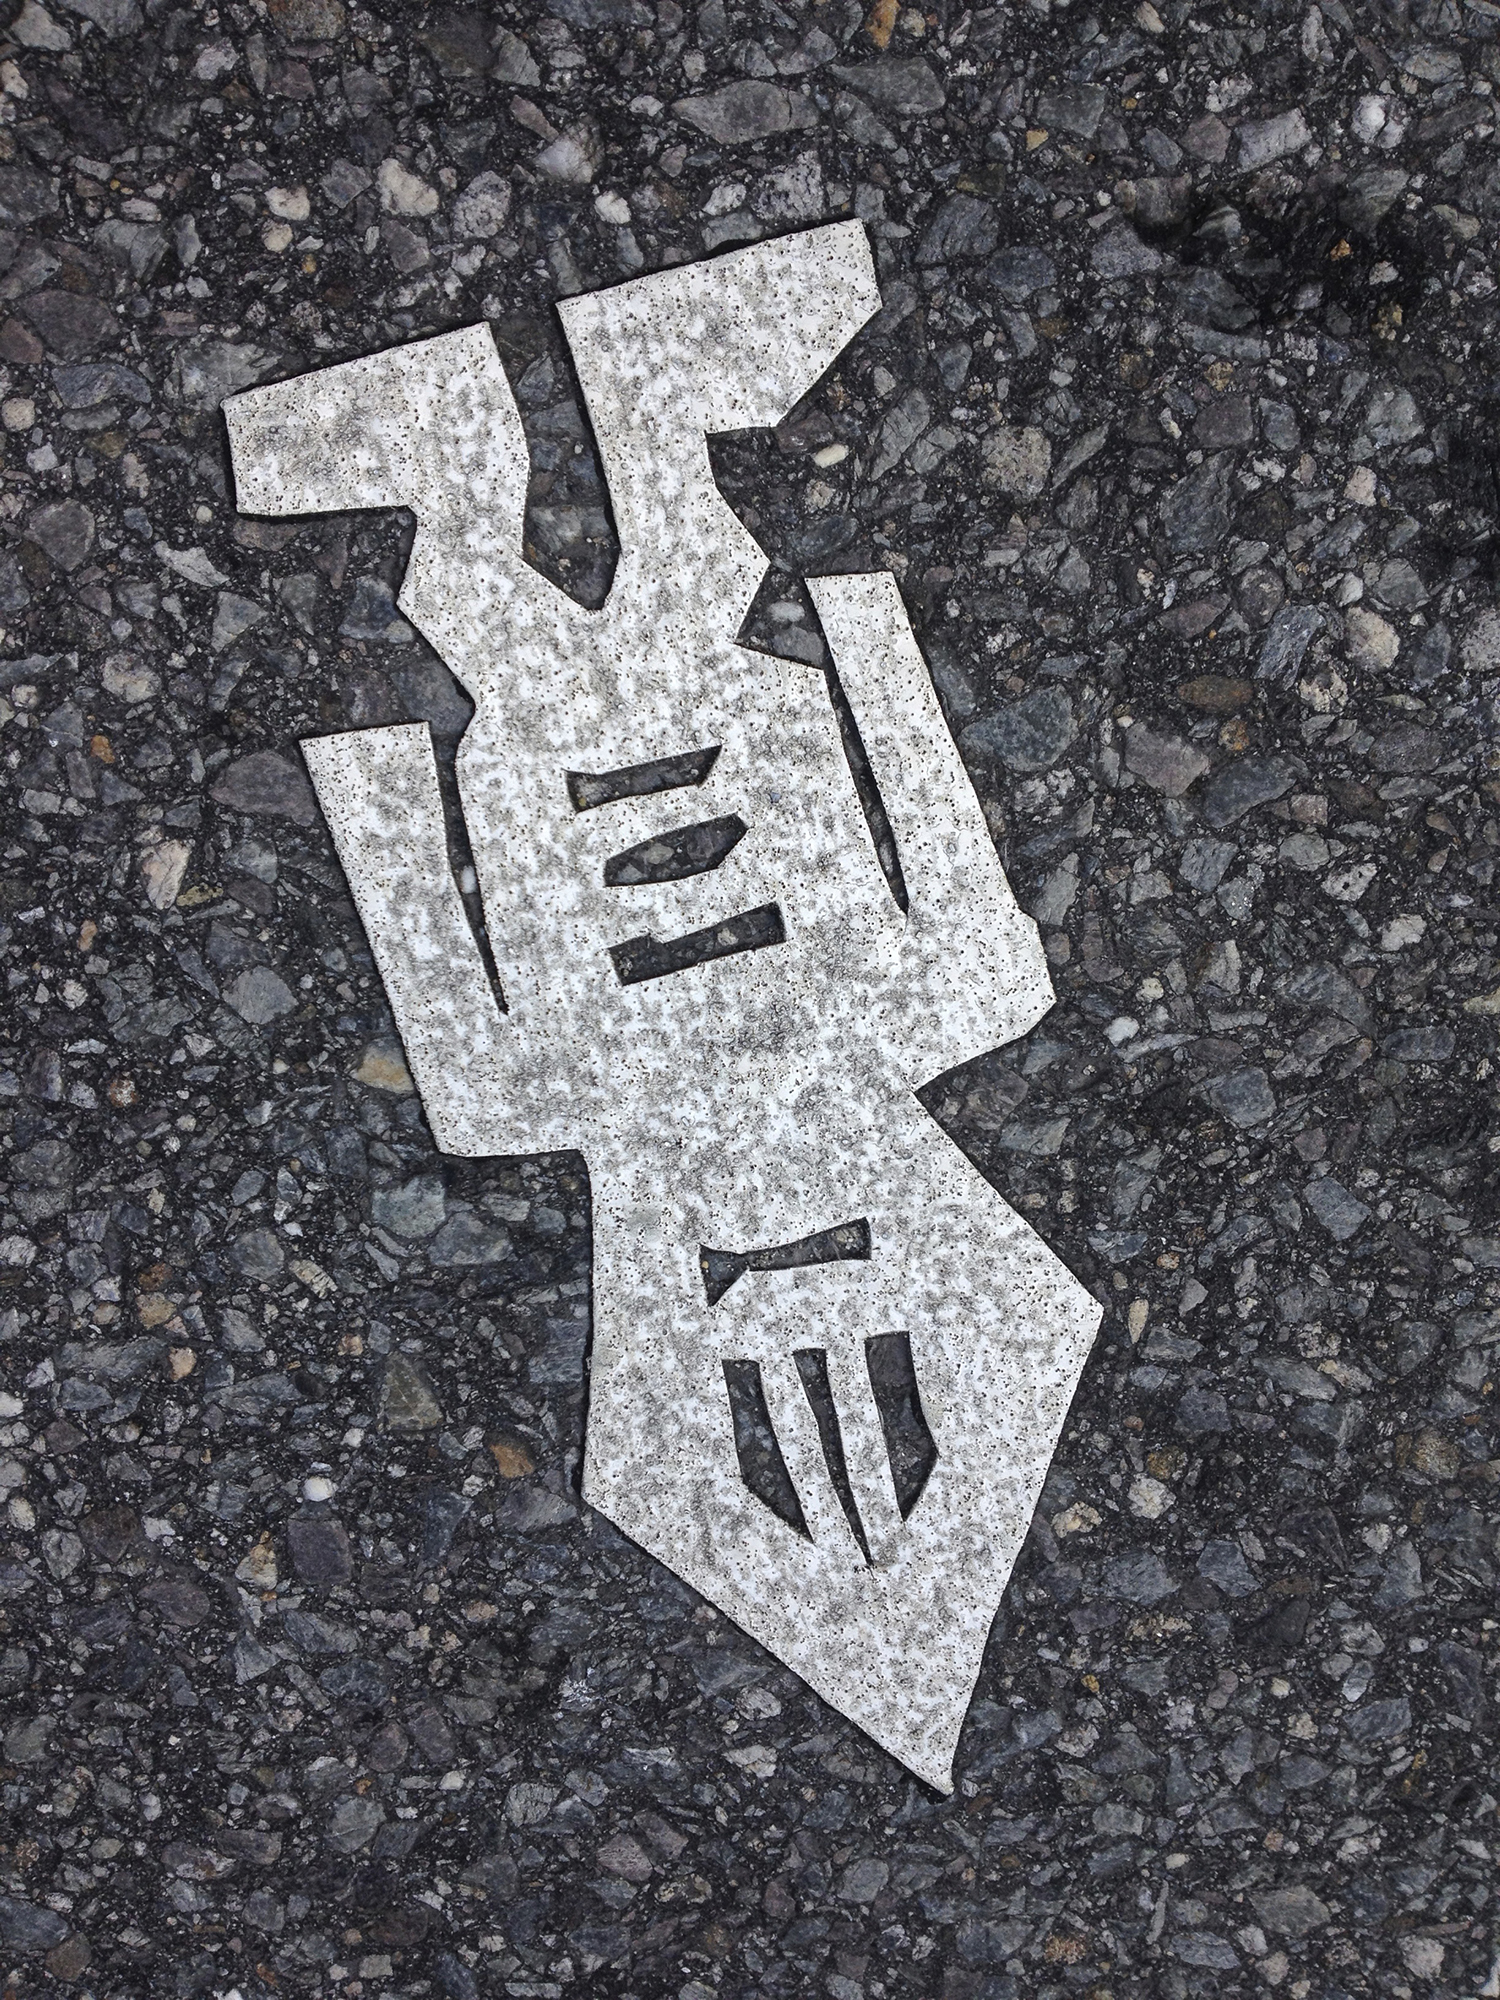 Traces - Humans leaving their mark.